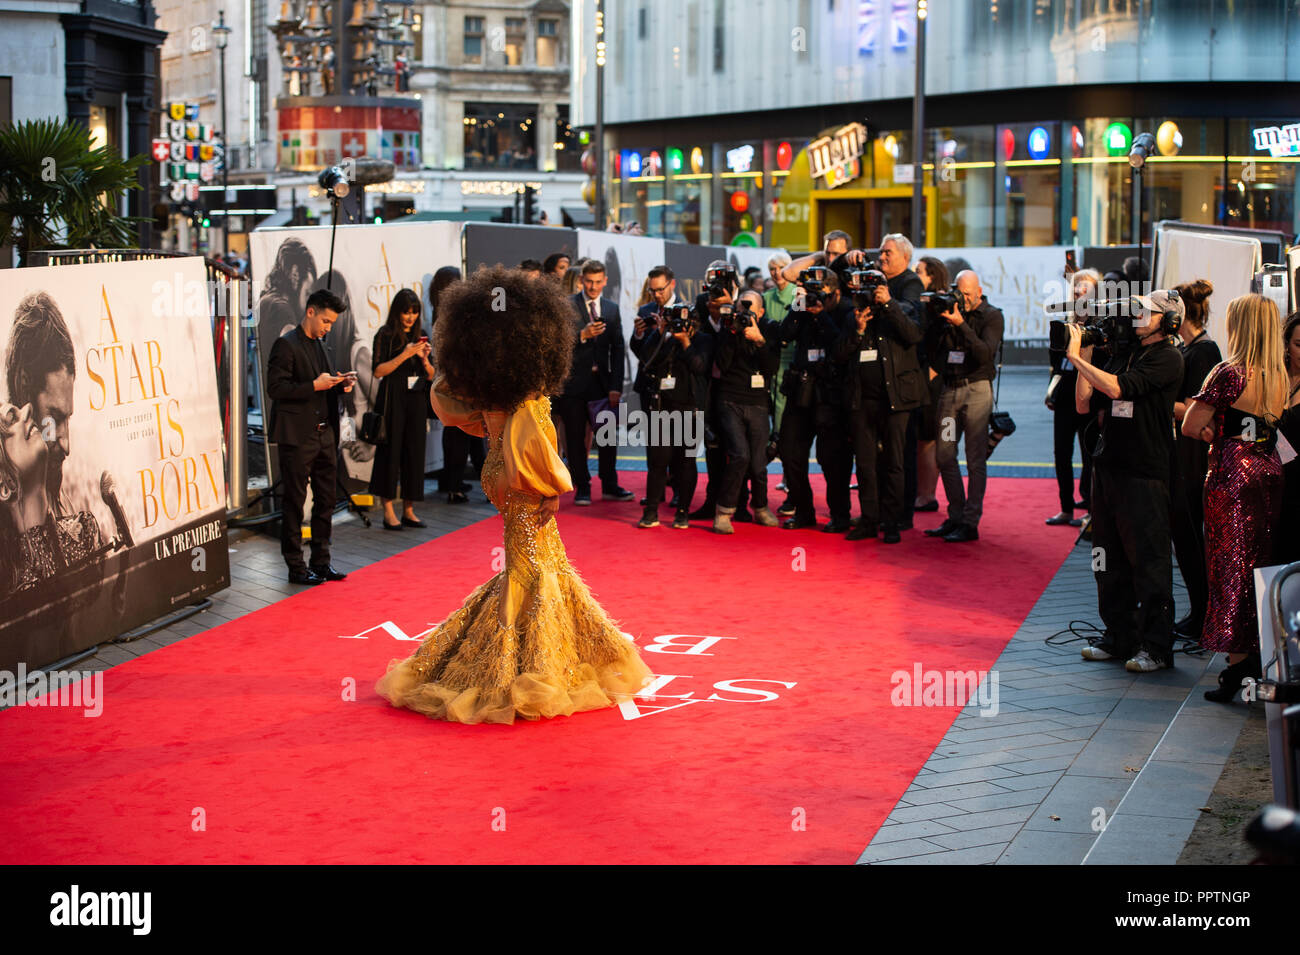 cc2bb838e2ad96 A Star Is Born  - UK Premiere - VIP Arrivals Stock Photo  220590630 ...